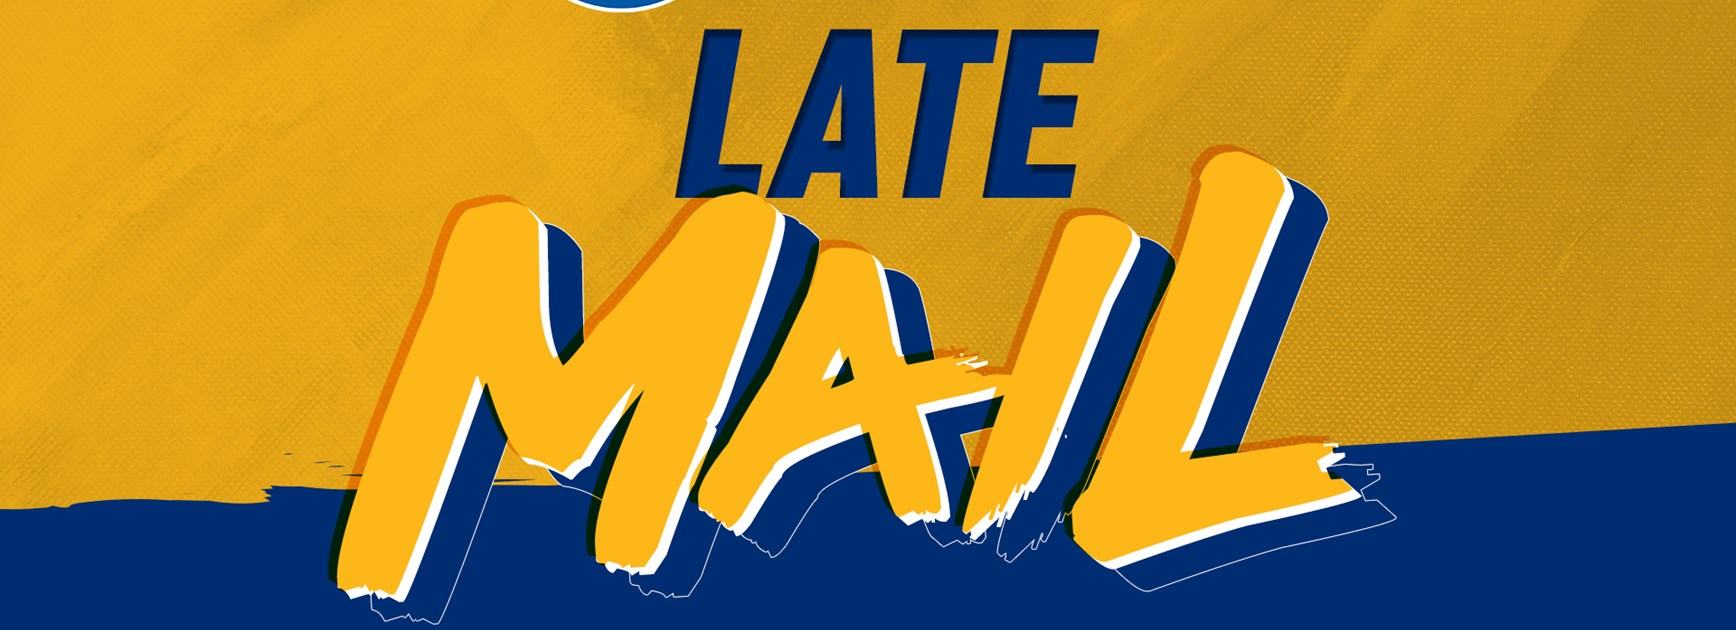 Eels v Cowboys Late Mail